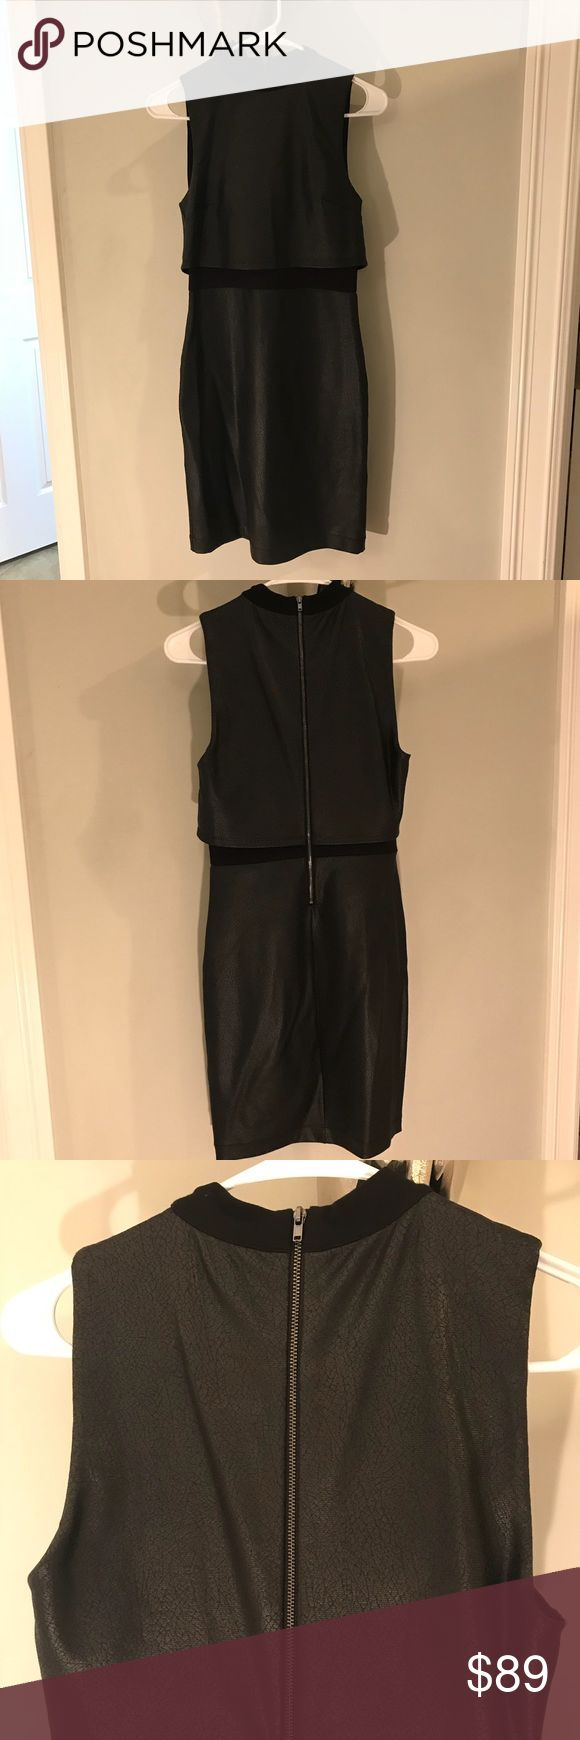 French Connection Dress Black French Connection dress. This dress is mad out of a fabric with a slight shine to it which gives it a faux leather look. Very form fitted and classy, huts at right about the knee and I am 5'5. Fits a true 4. All offers will be considered! French Connection Dresses Mini